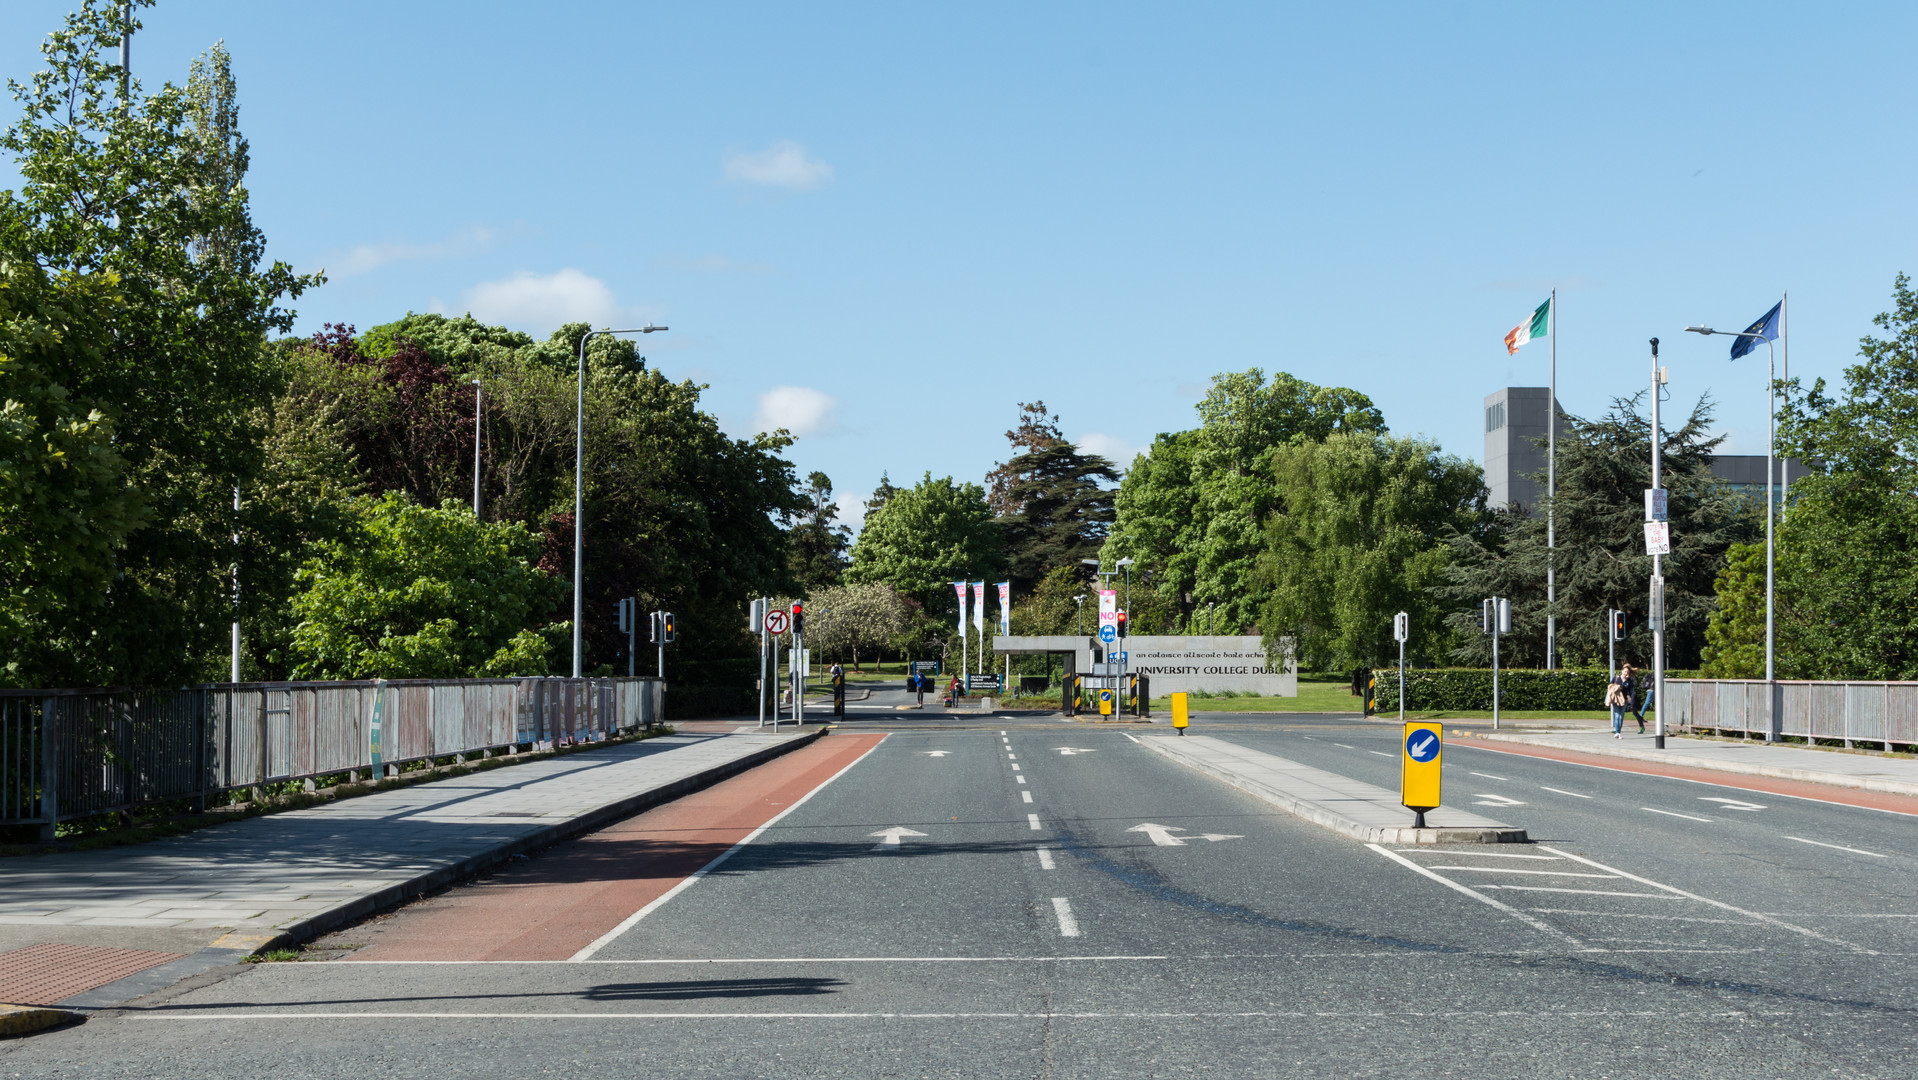 Entrance from bridge to UCD campus, Dublin